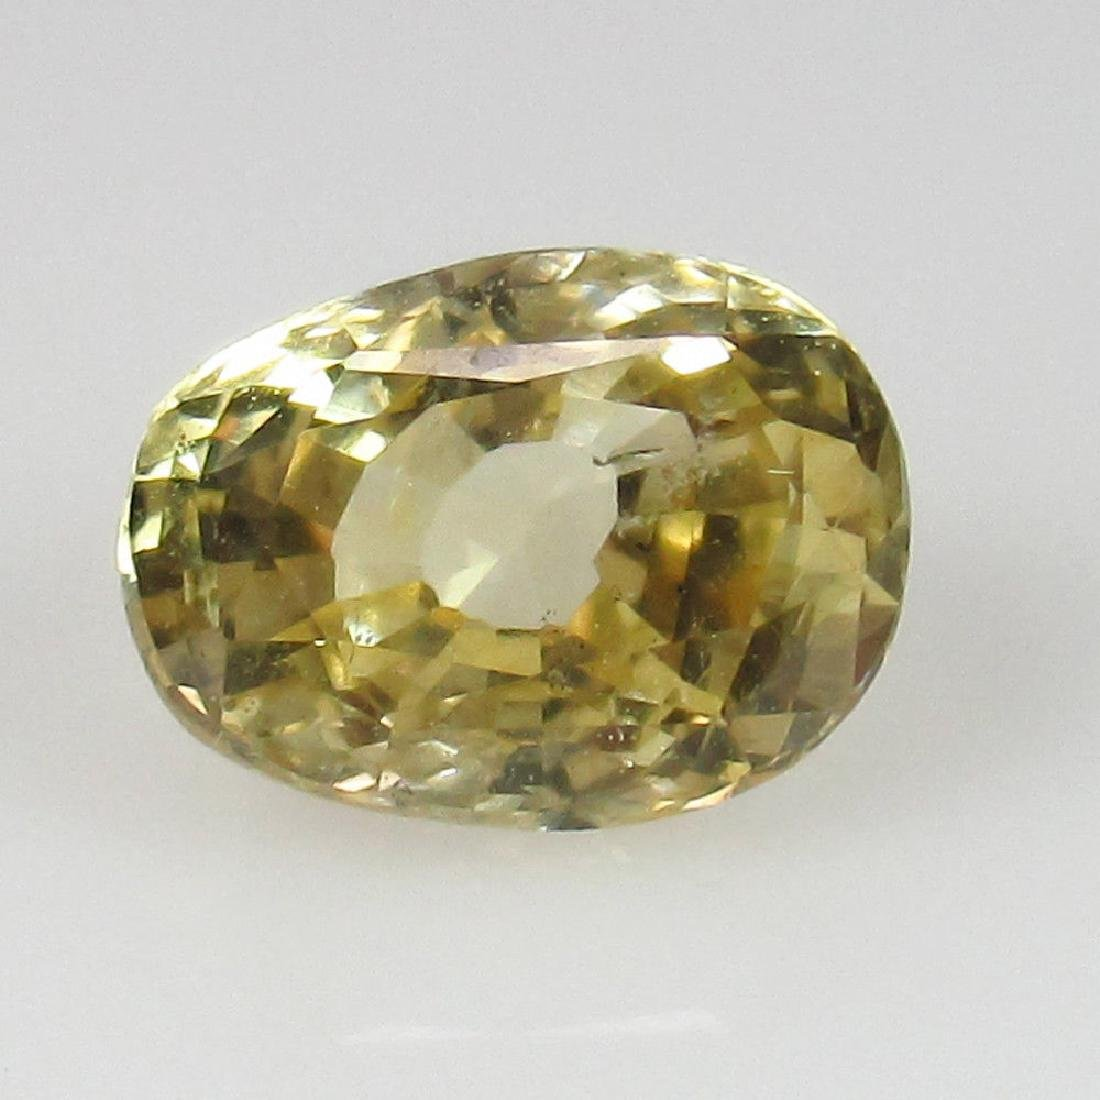 1.69 Ctw Natural Unheated Yellow Sapphire